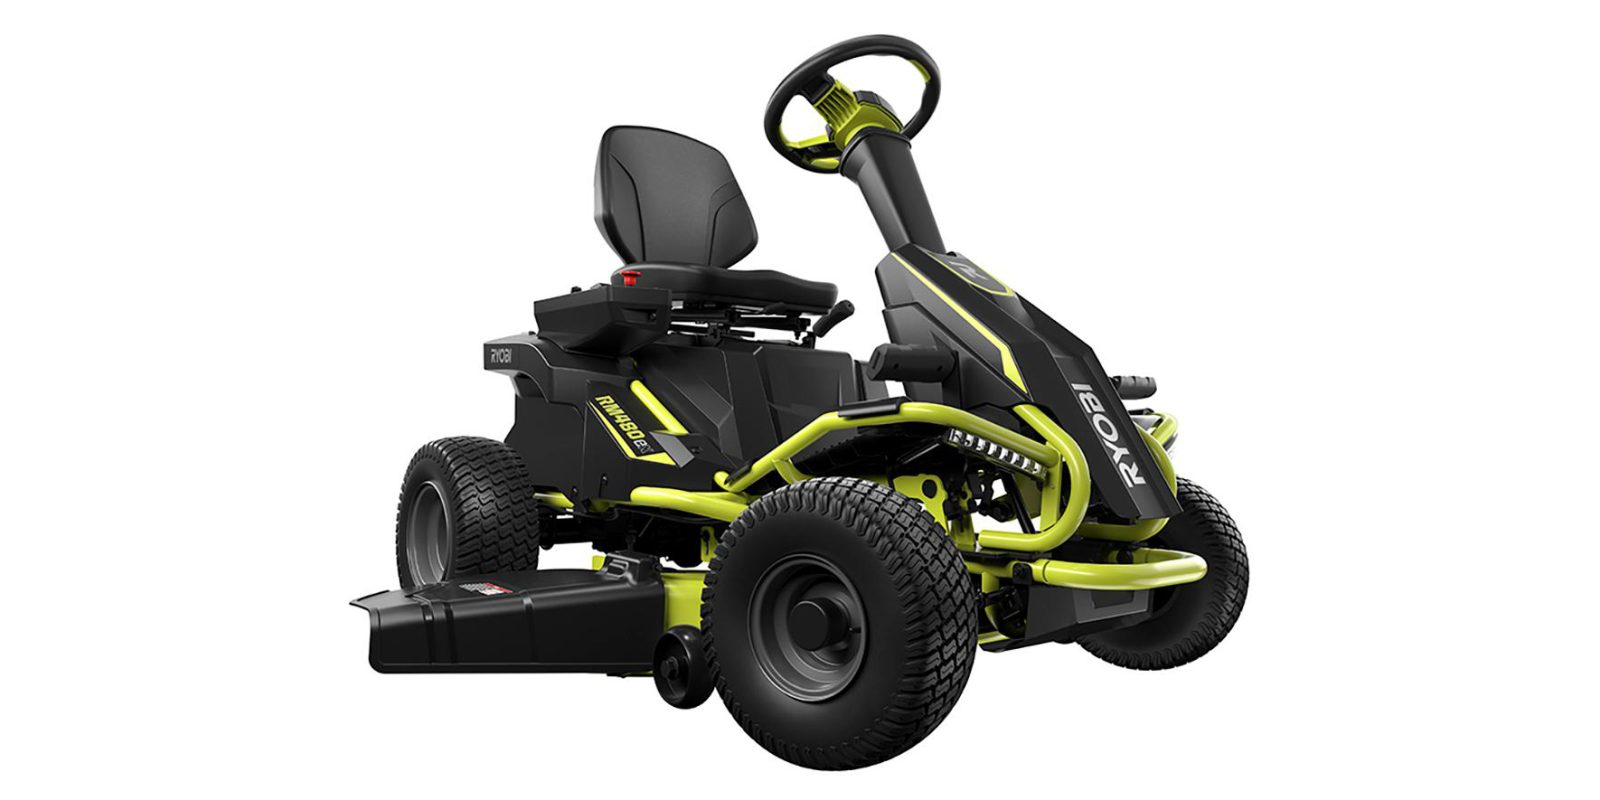 Ryobi's 100Ah Electric Riding Lawn Mower is $2,599 ($300 off), more in today's Green Deals